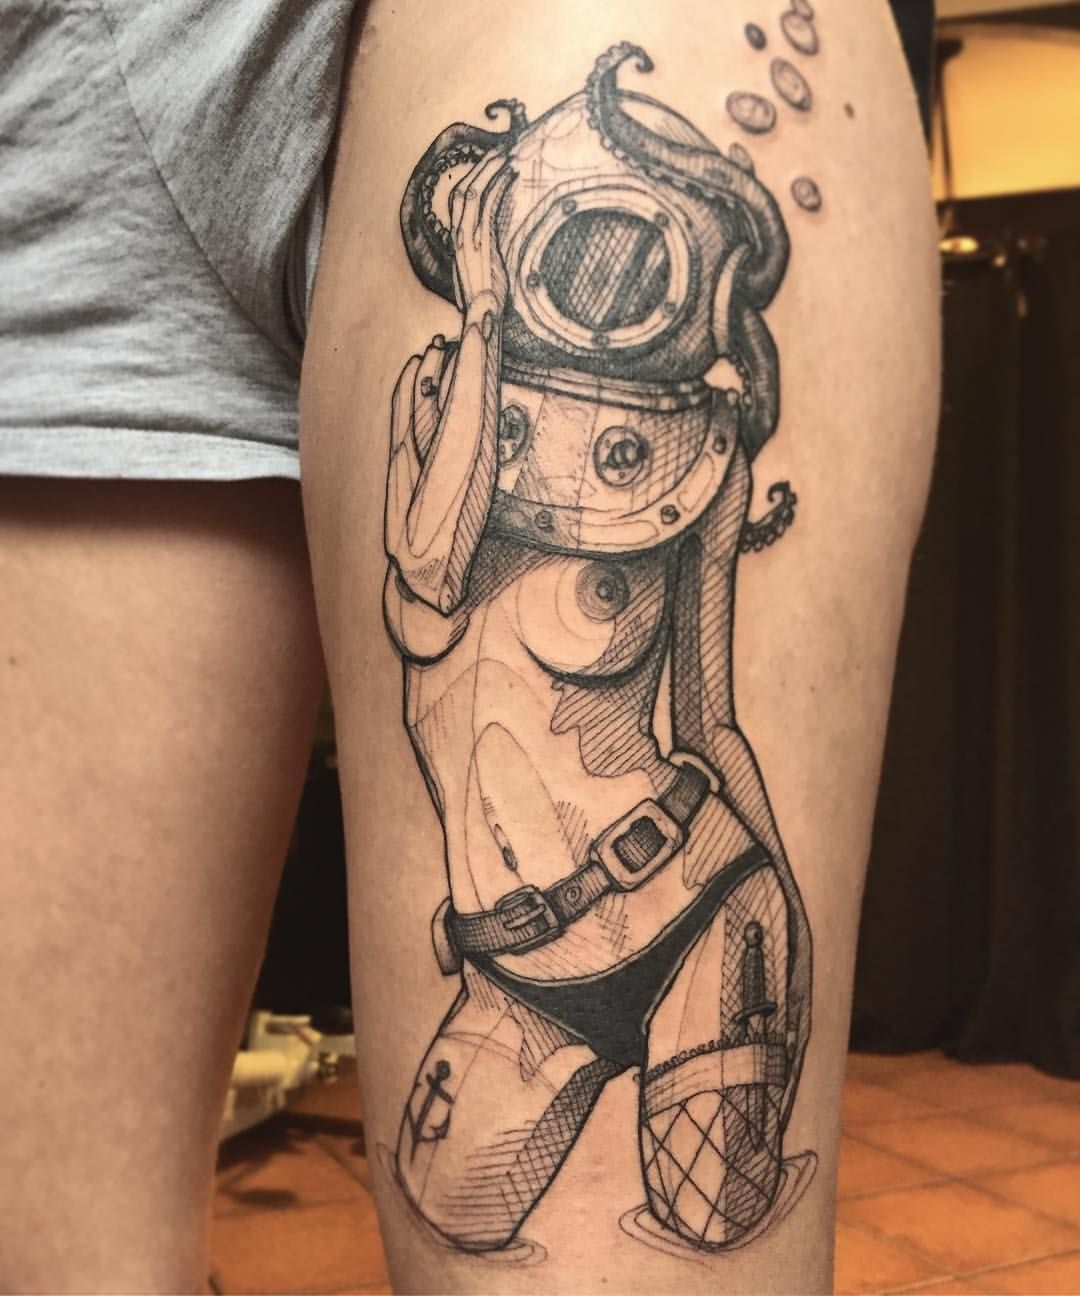 Forum on this topic: 60 Diver Tattoo Designs For Men – , 60-diver-tattoo-designs-for-men/